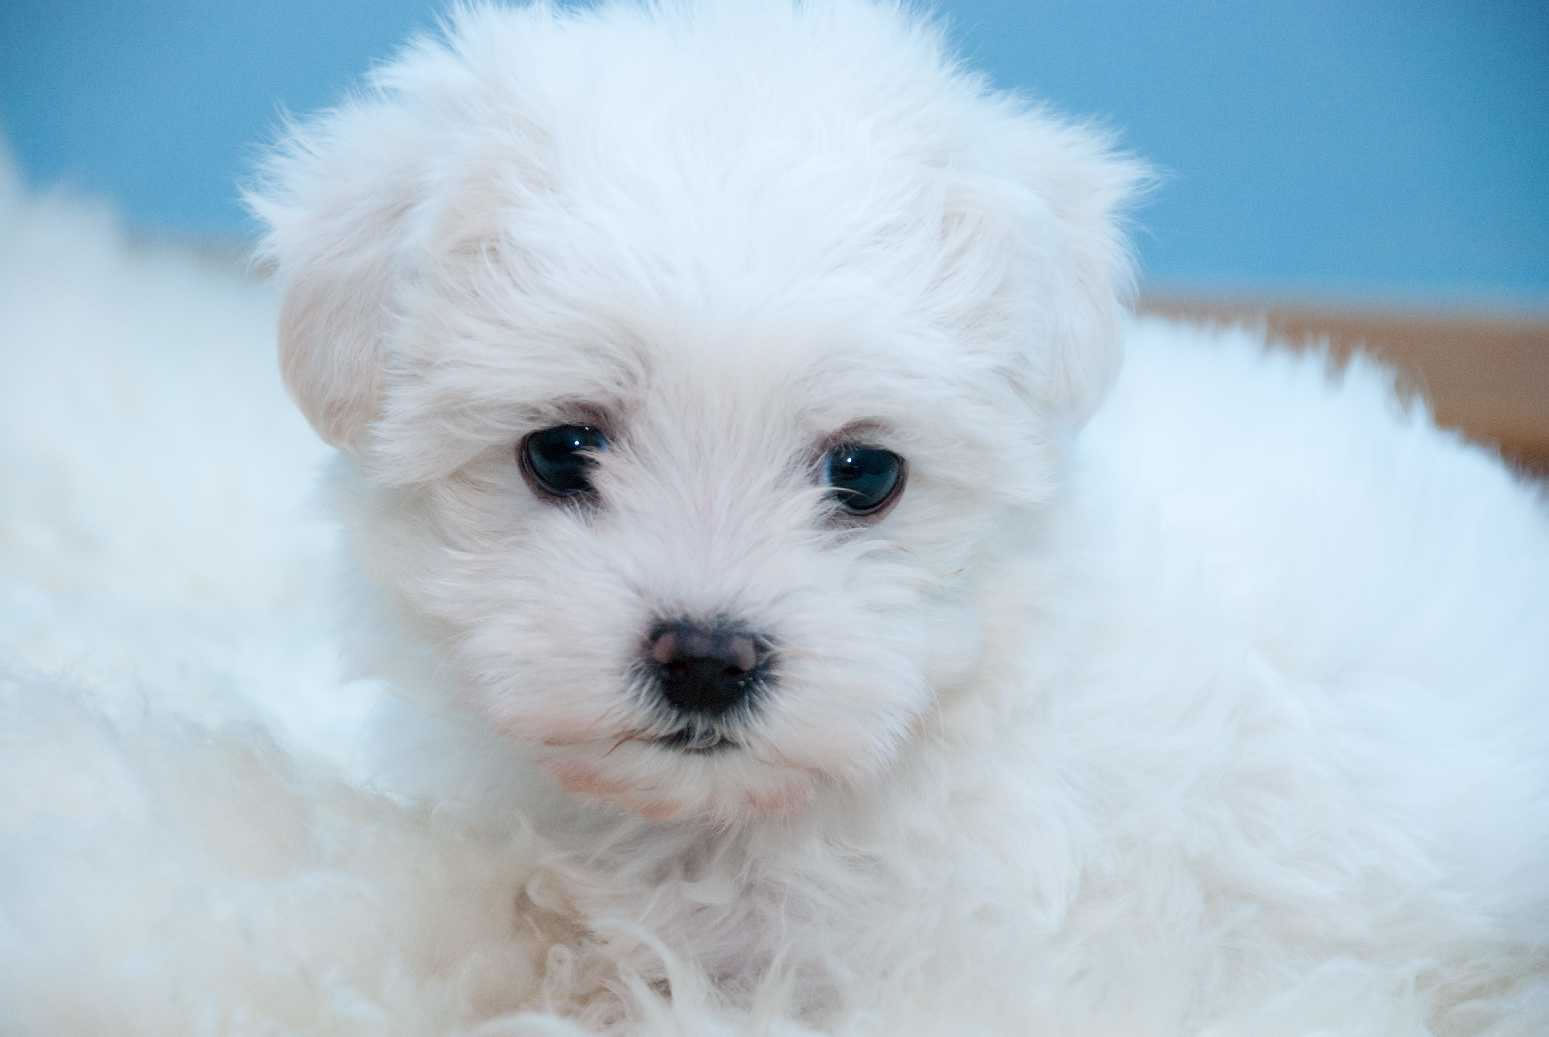 bichon frise The bichon frise poodle mix, also known as a bichpoo or a poochon, is a designer dog that's aimed at melding the best characteristics of the poodle.